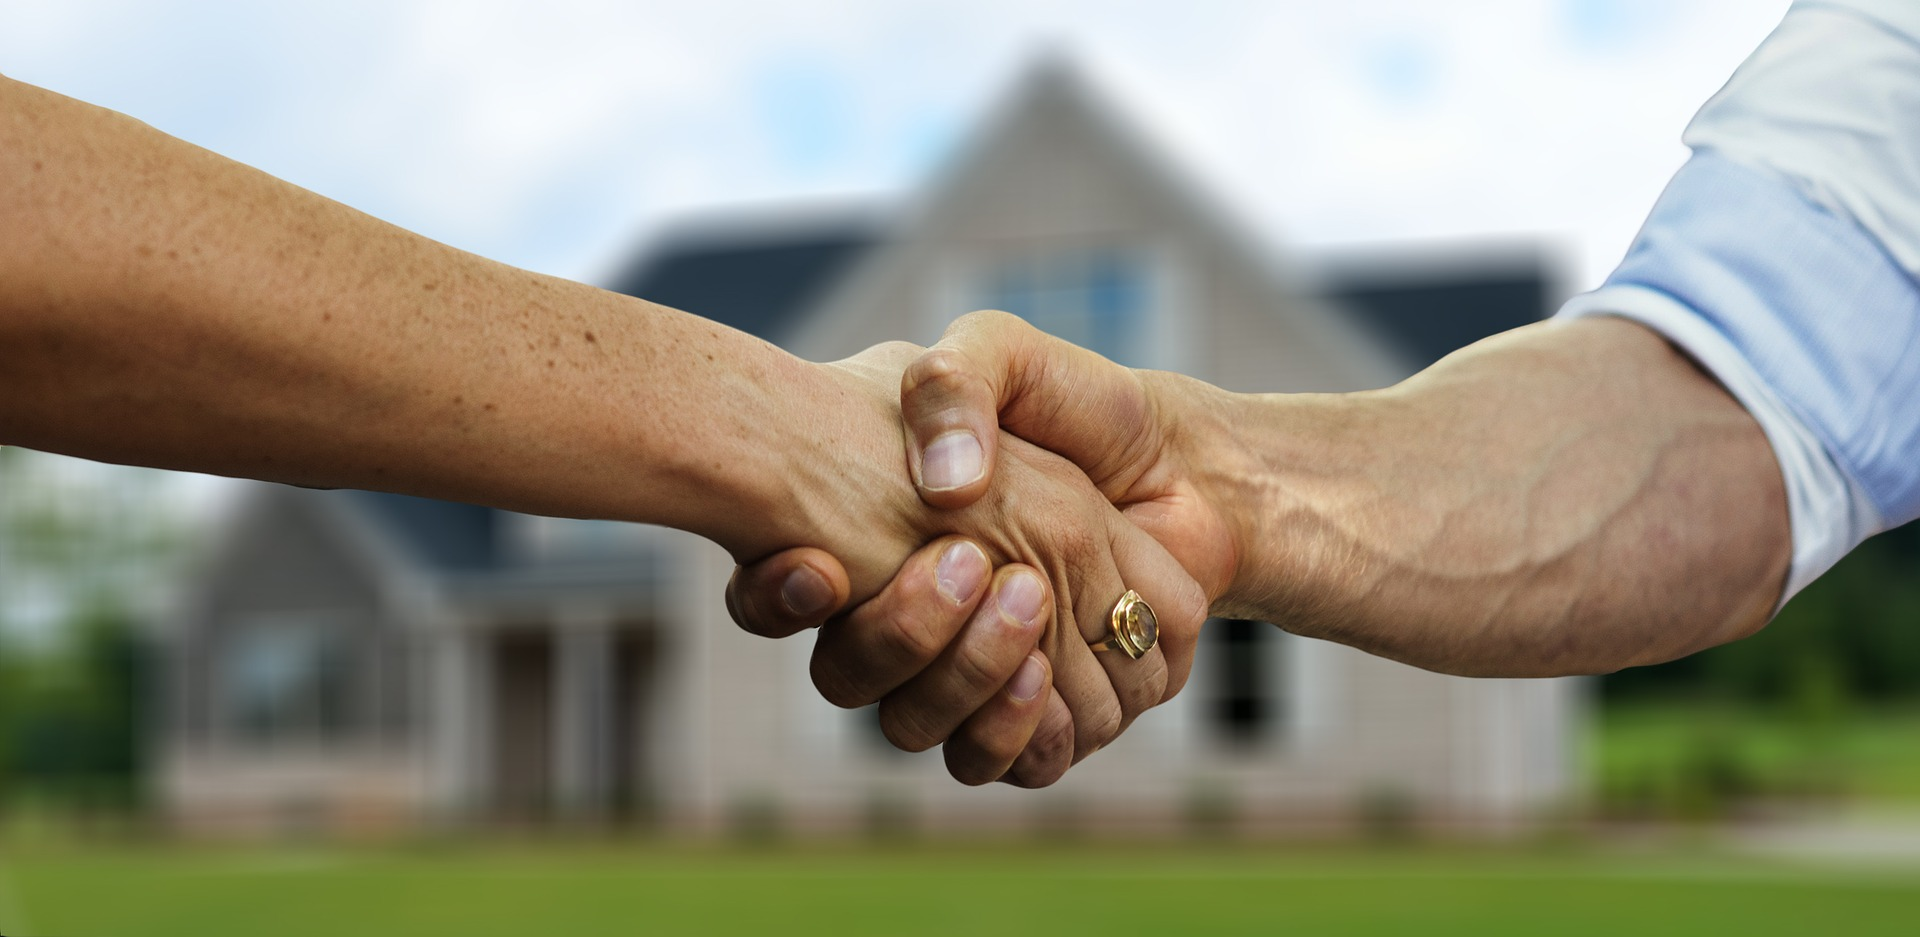 Real estate agent shaking hands with client in front of new home